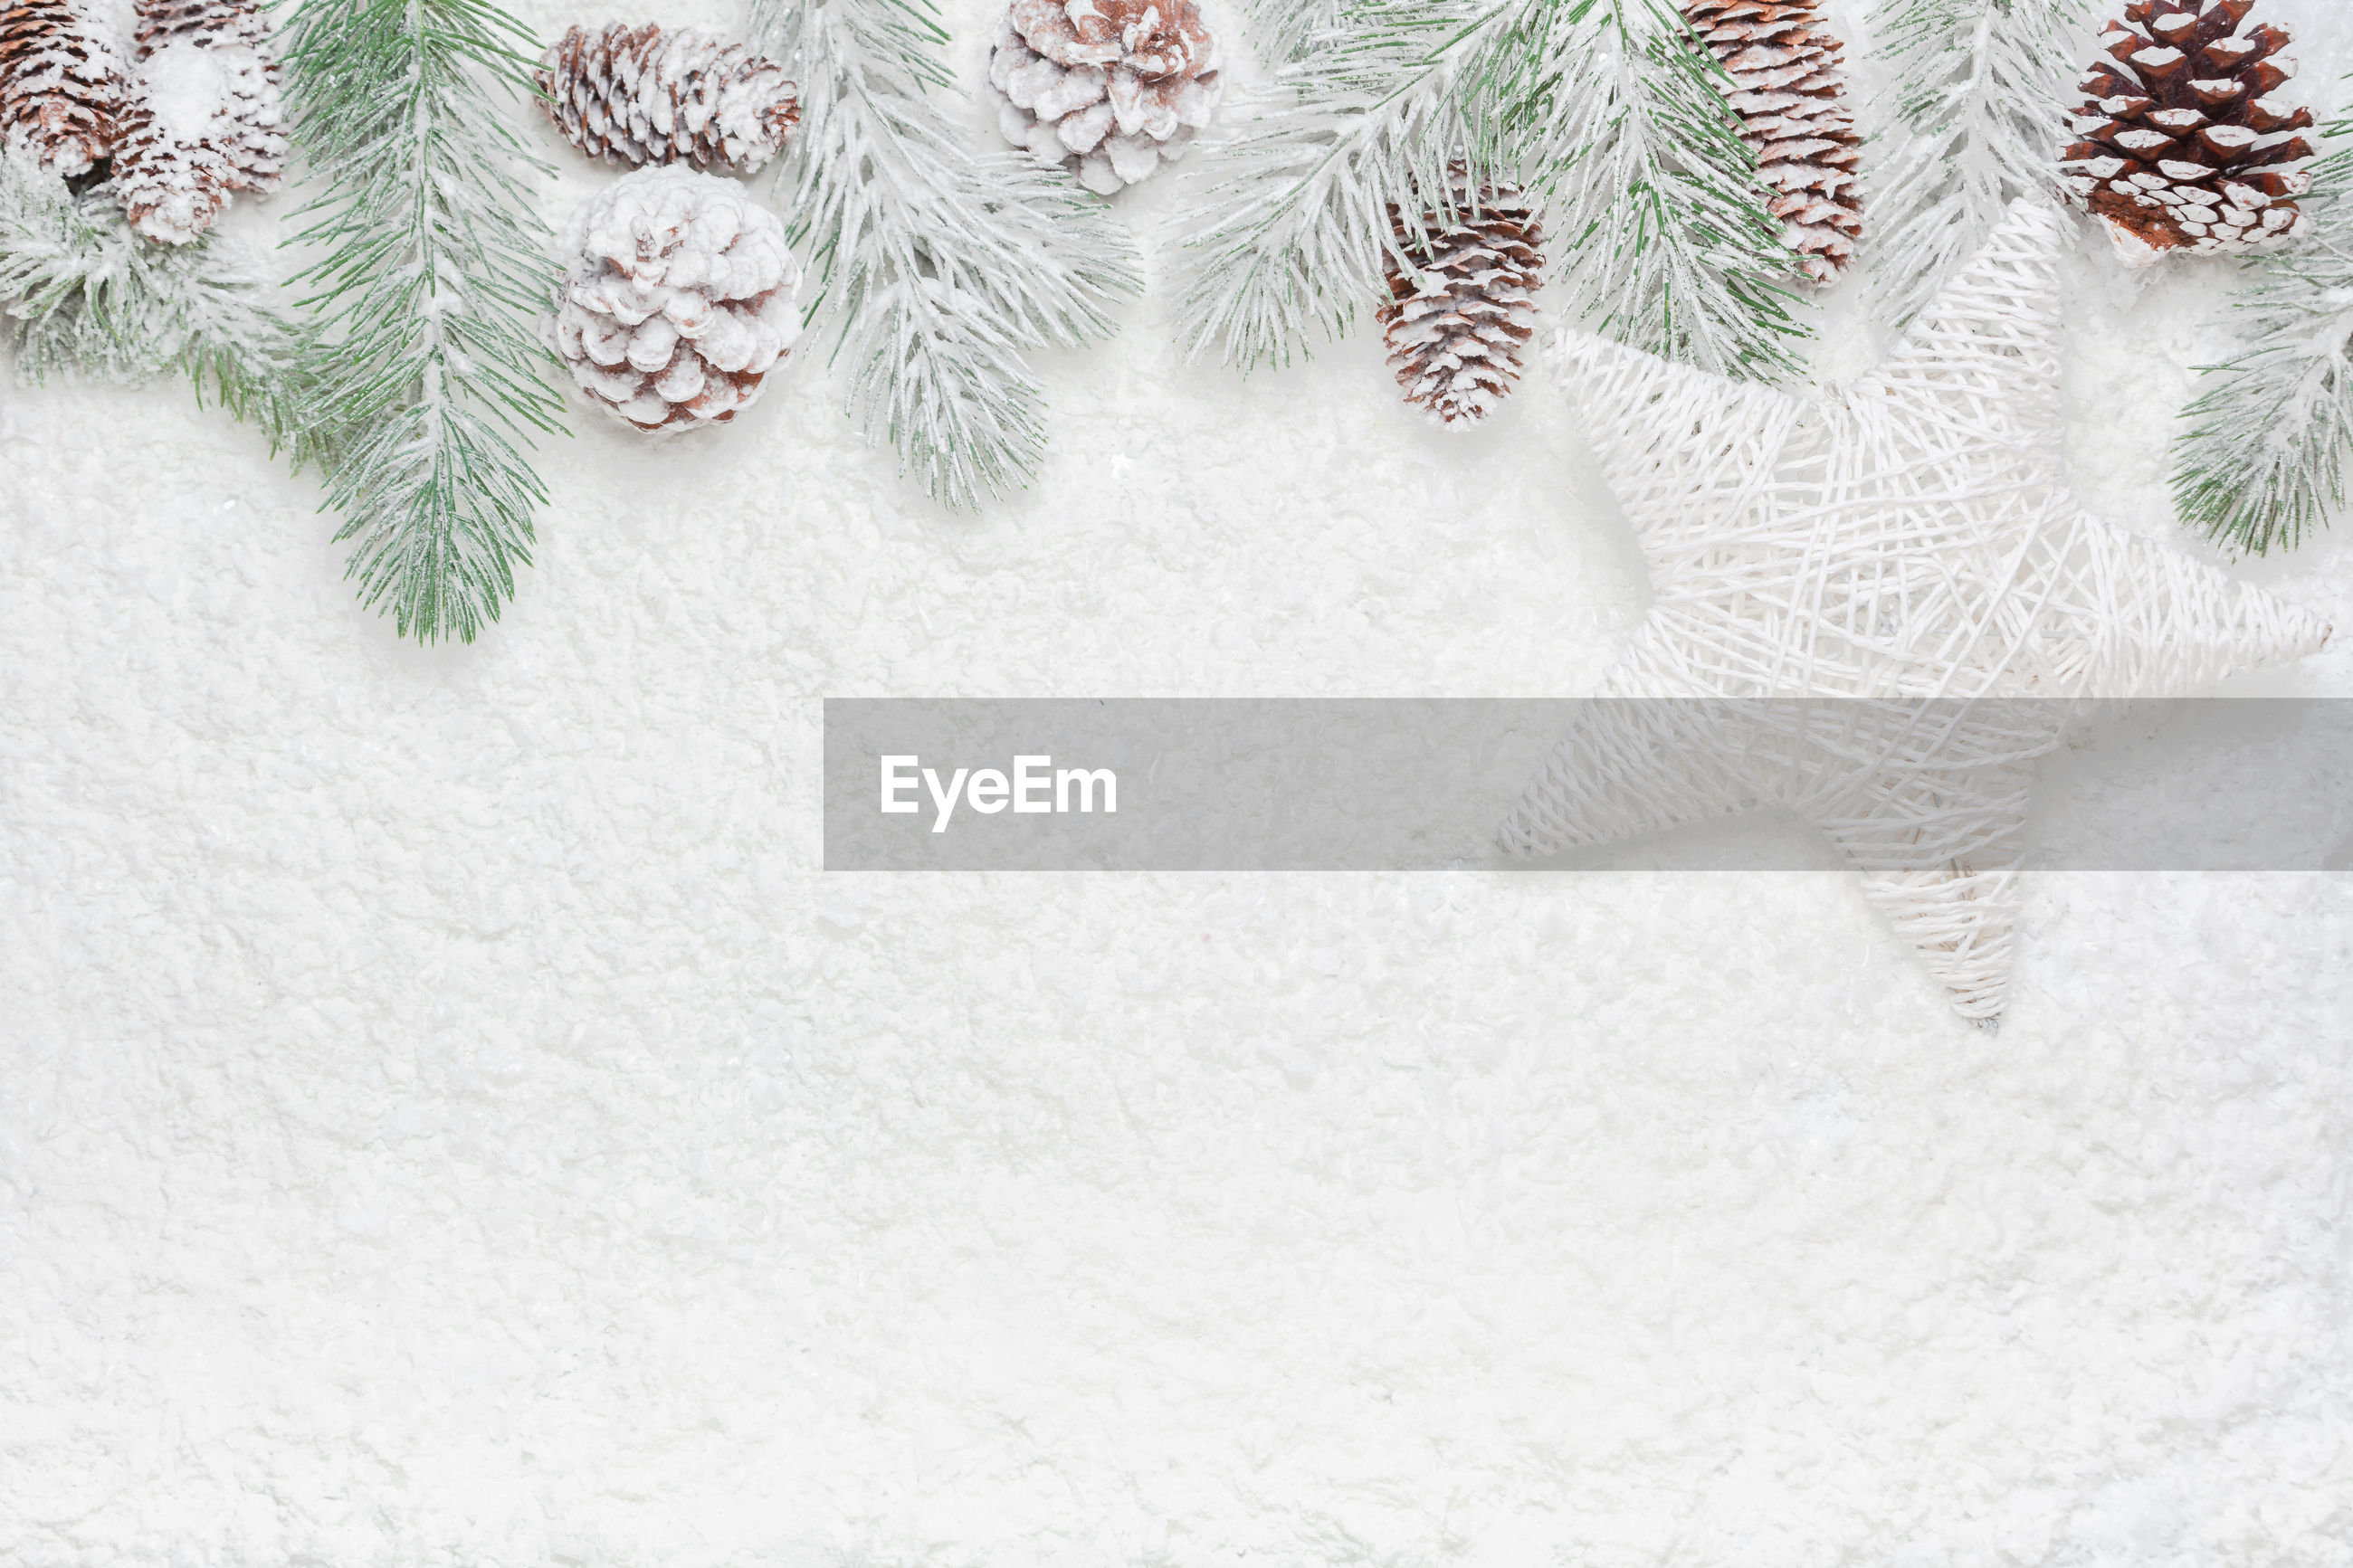 CLOSE-UP OF CHRISTMAS TREE ON SNOW COVERED LANDSCAPE